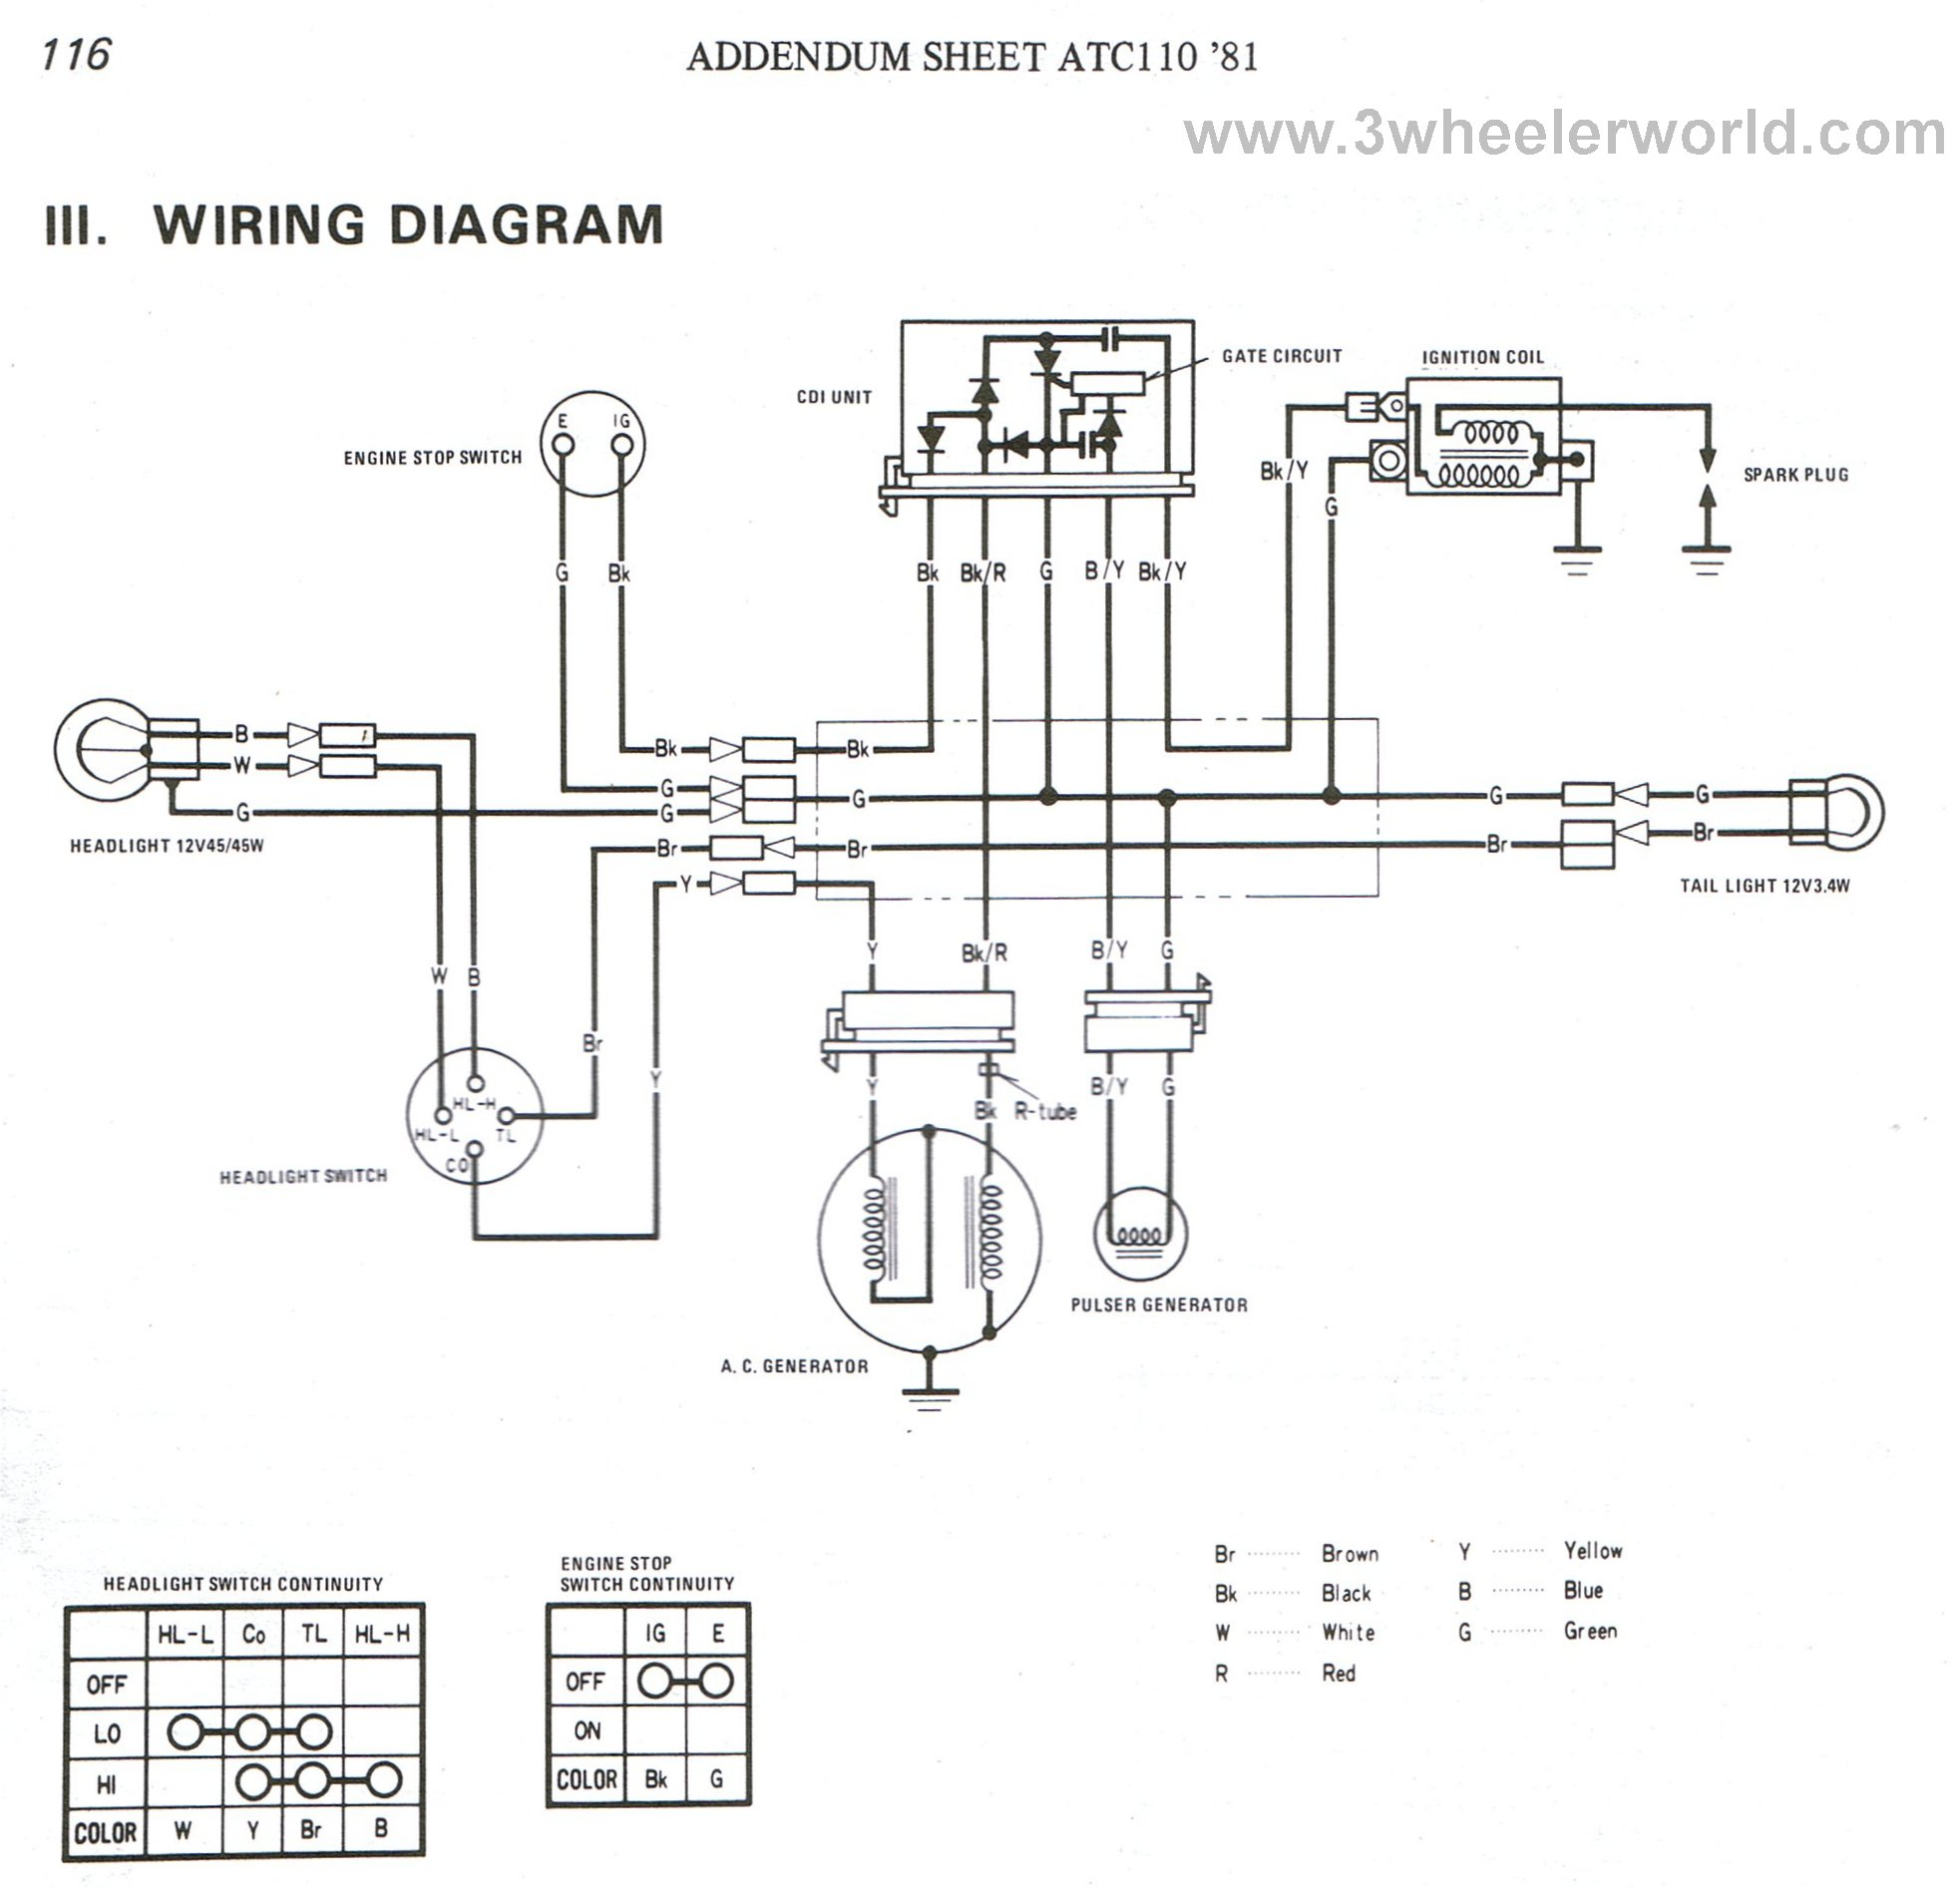 ATC110x81HM mini chopper wiring diagram & razor� crazy cart version 1 2 wiring Electric Motor Wiring Diagram at edmiracle.co